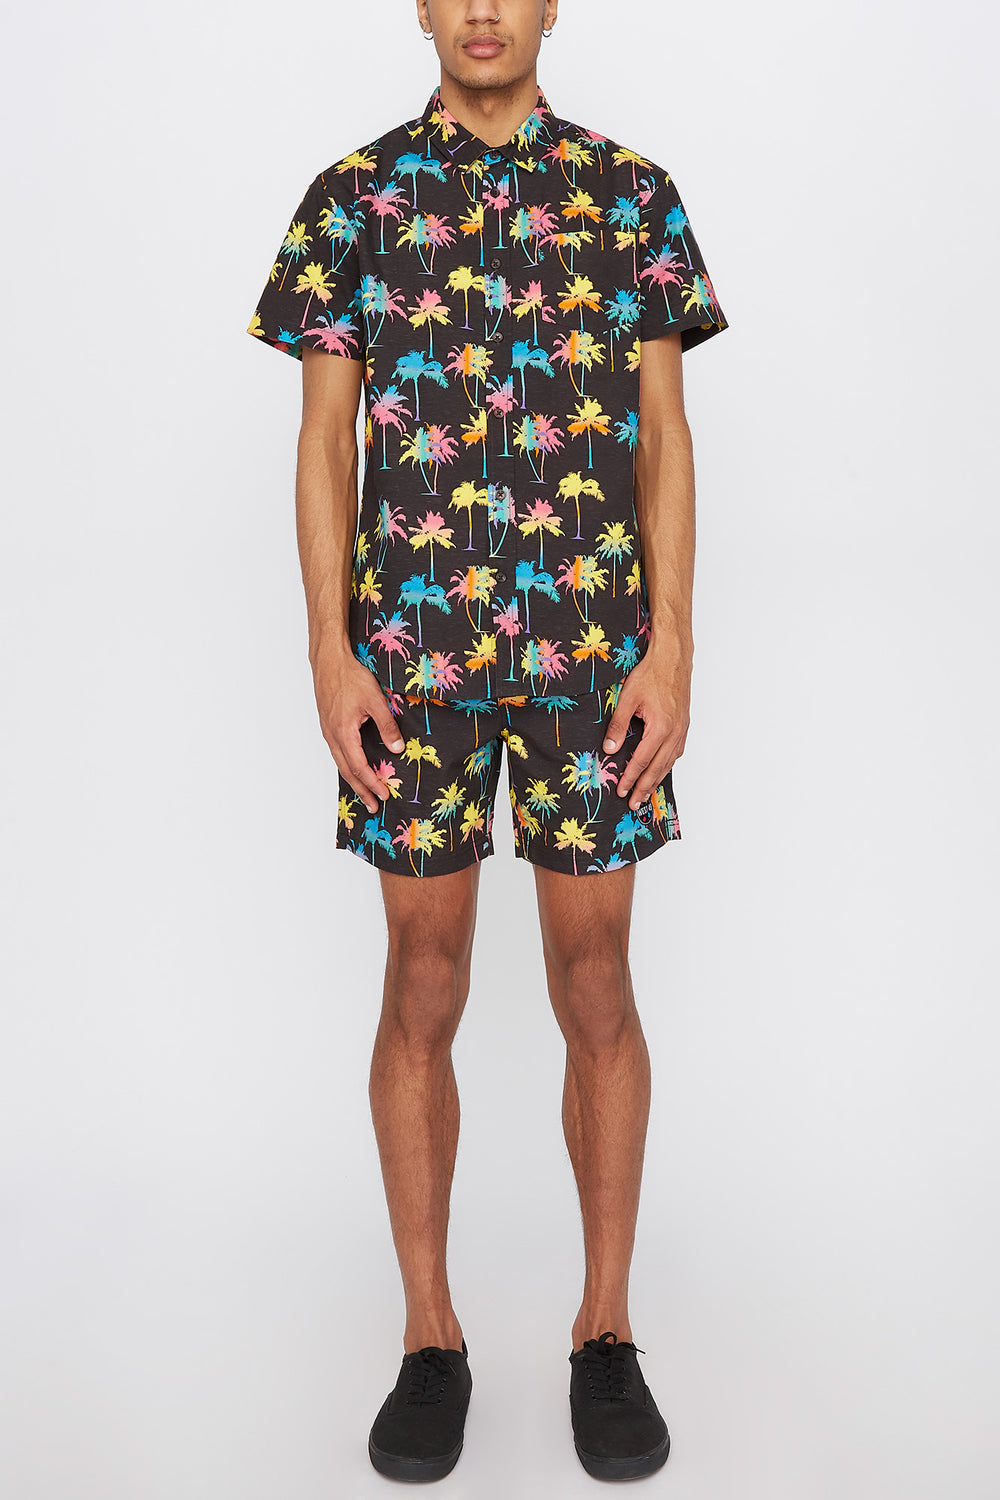 West49 Mens Neon Palm Tree Button-Up Shirt Black